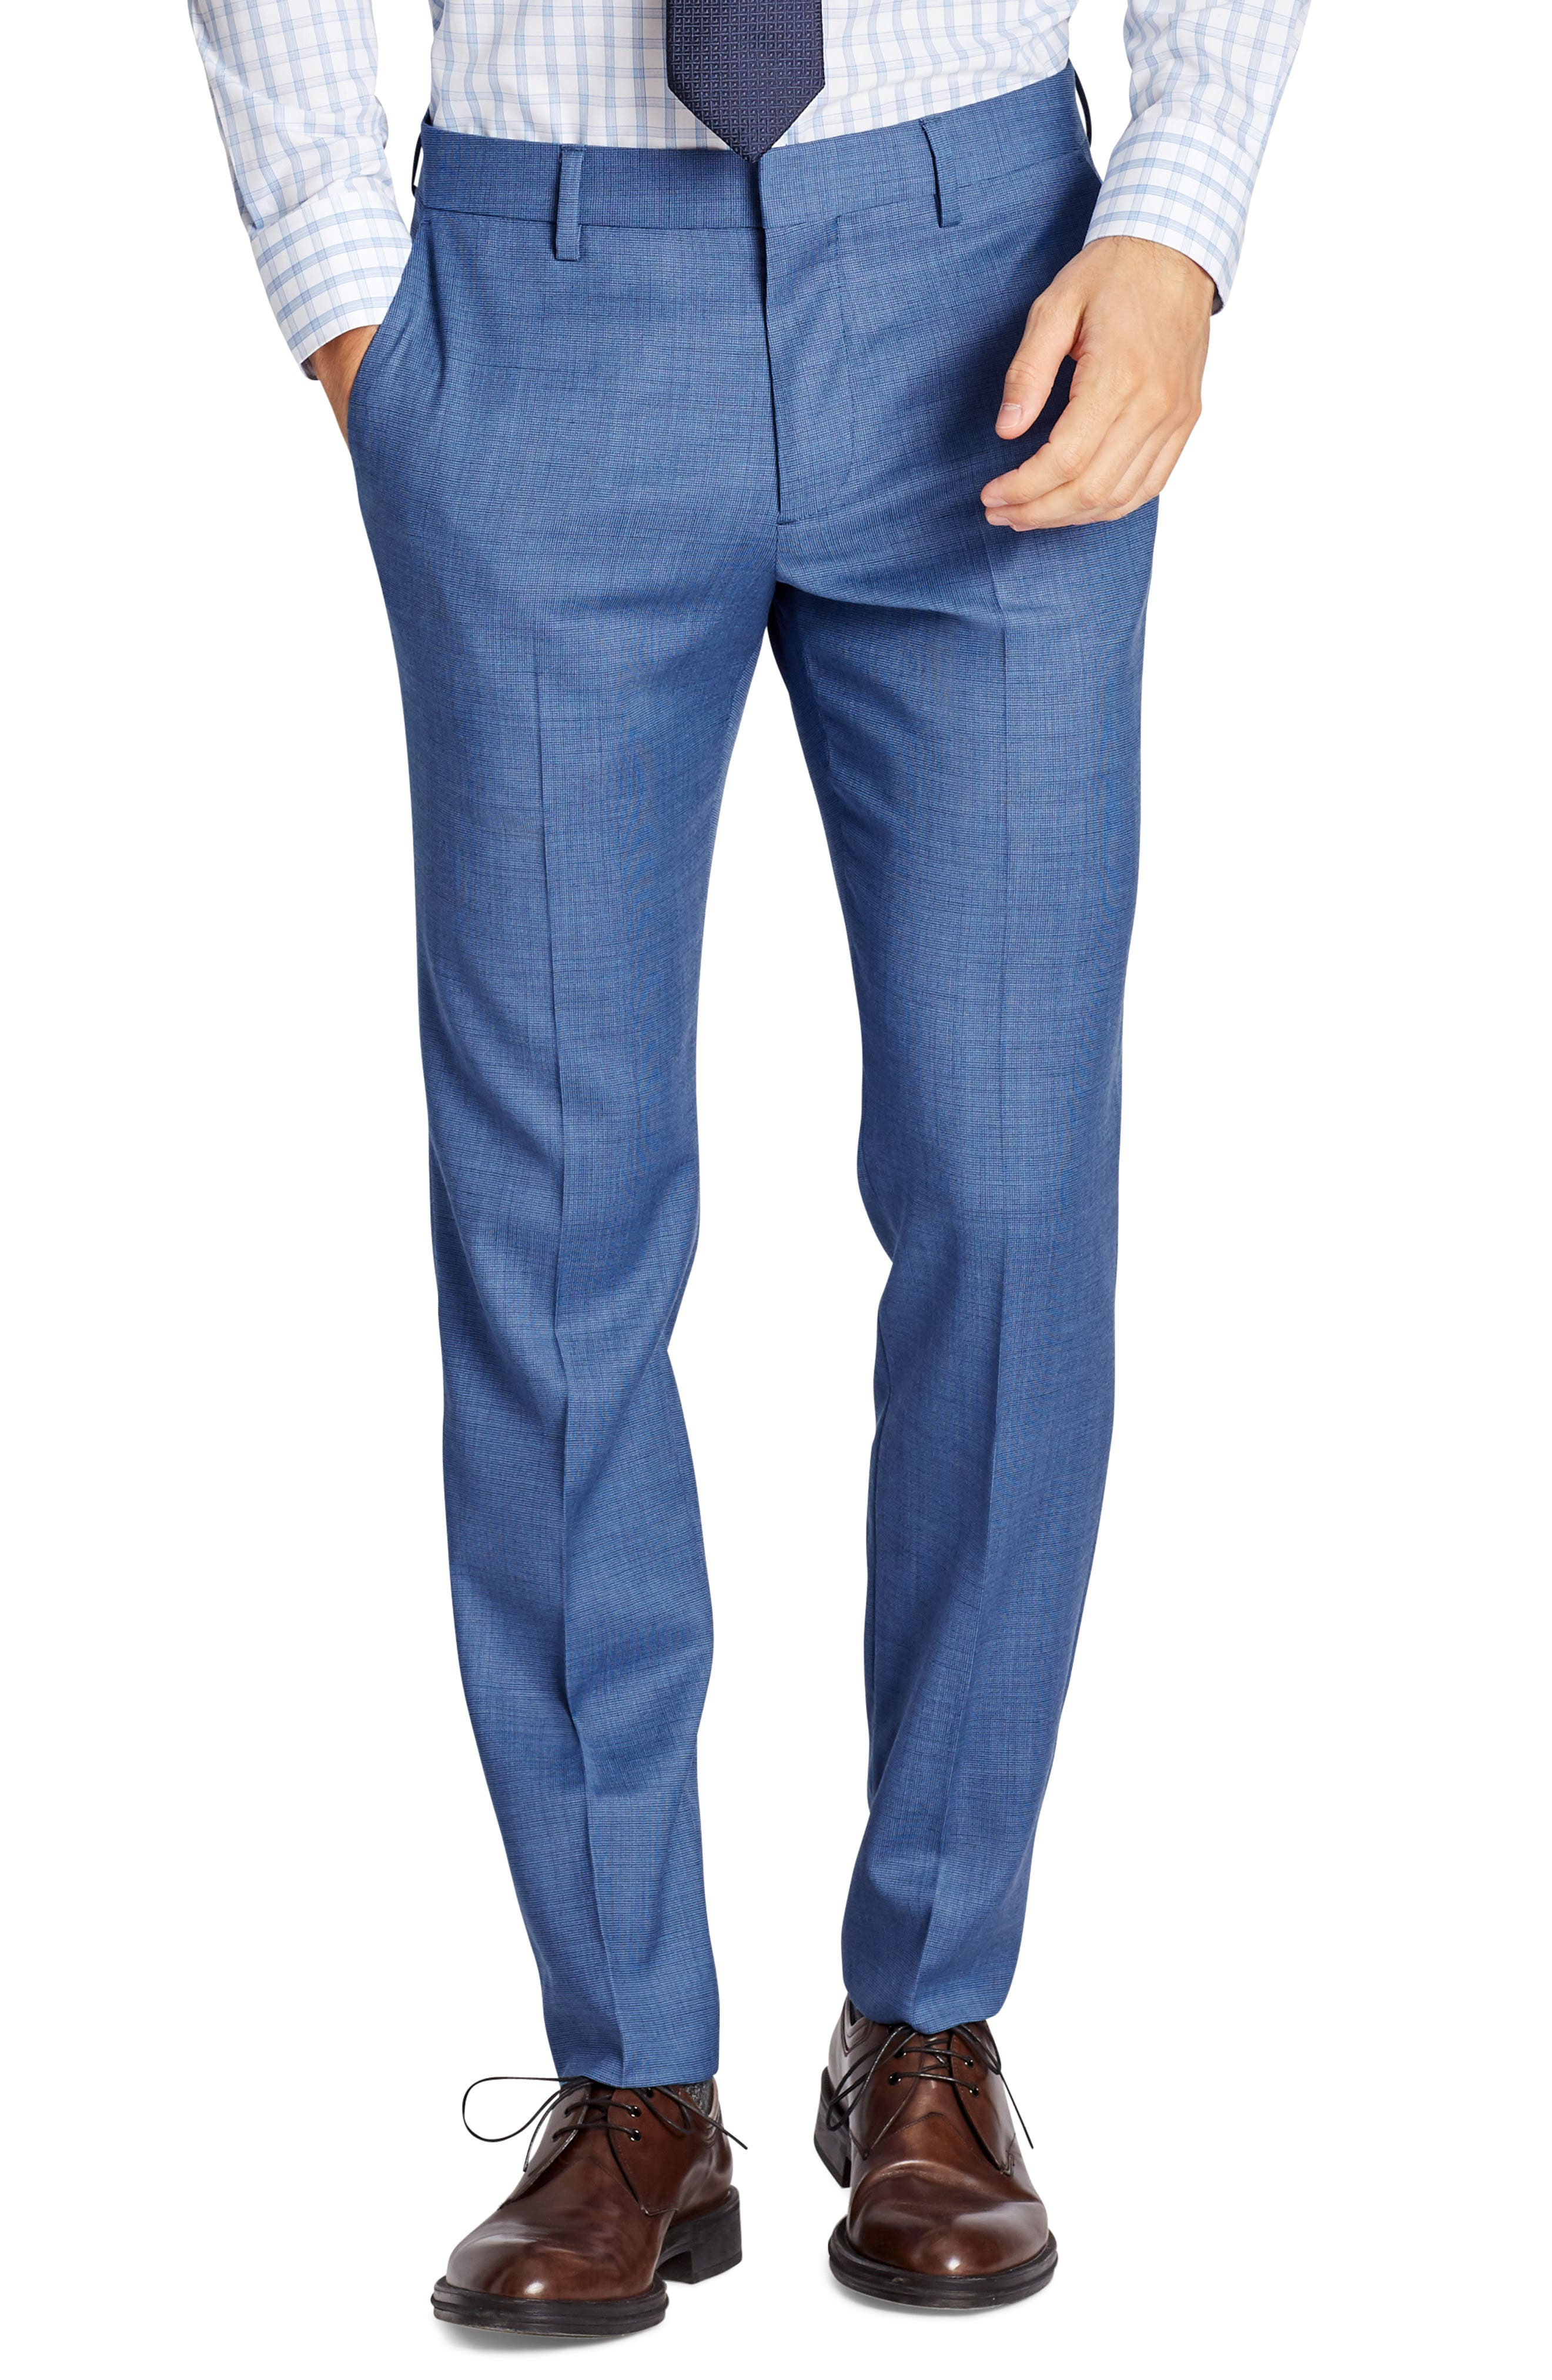 BONOBOS, Jetsetter Flat Front Solid Stretch Wool Trousers, Main thumbnail 1, color, BRIGHTER BLUE